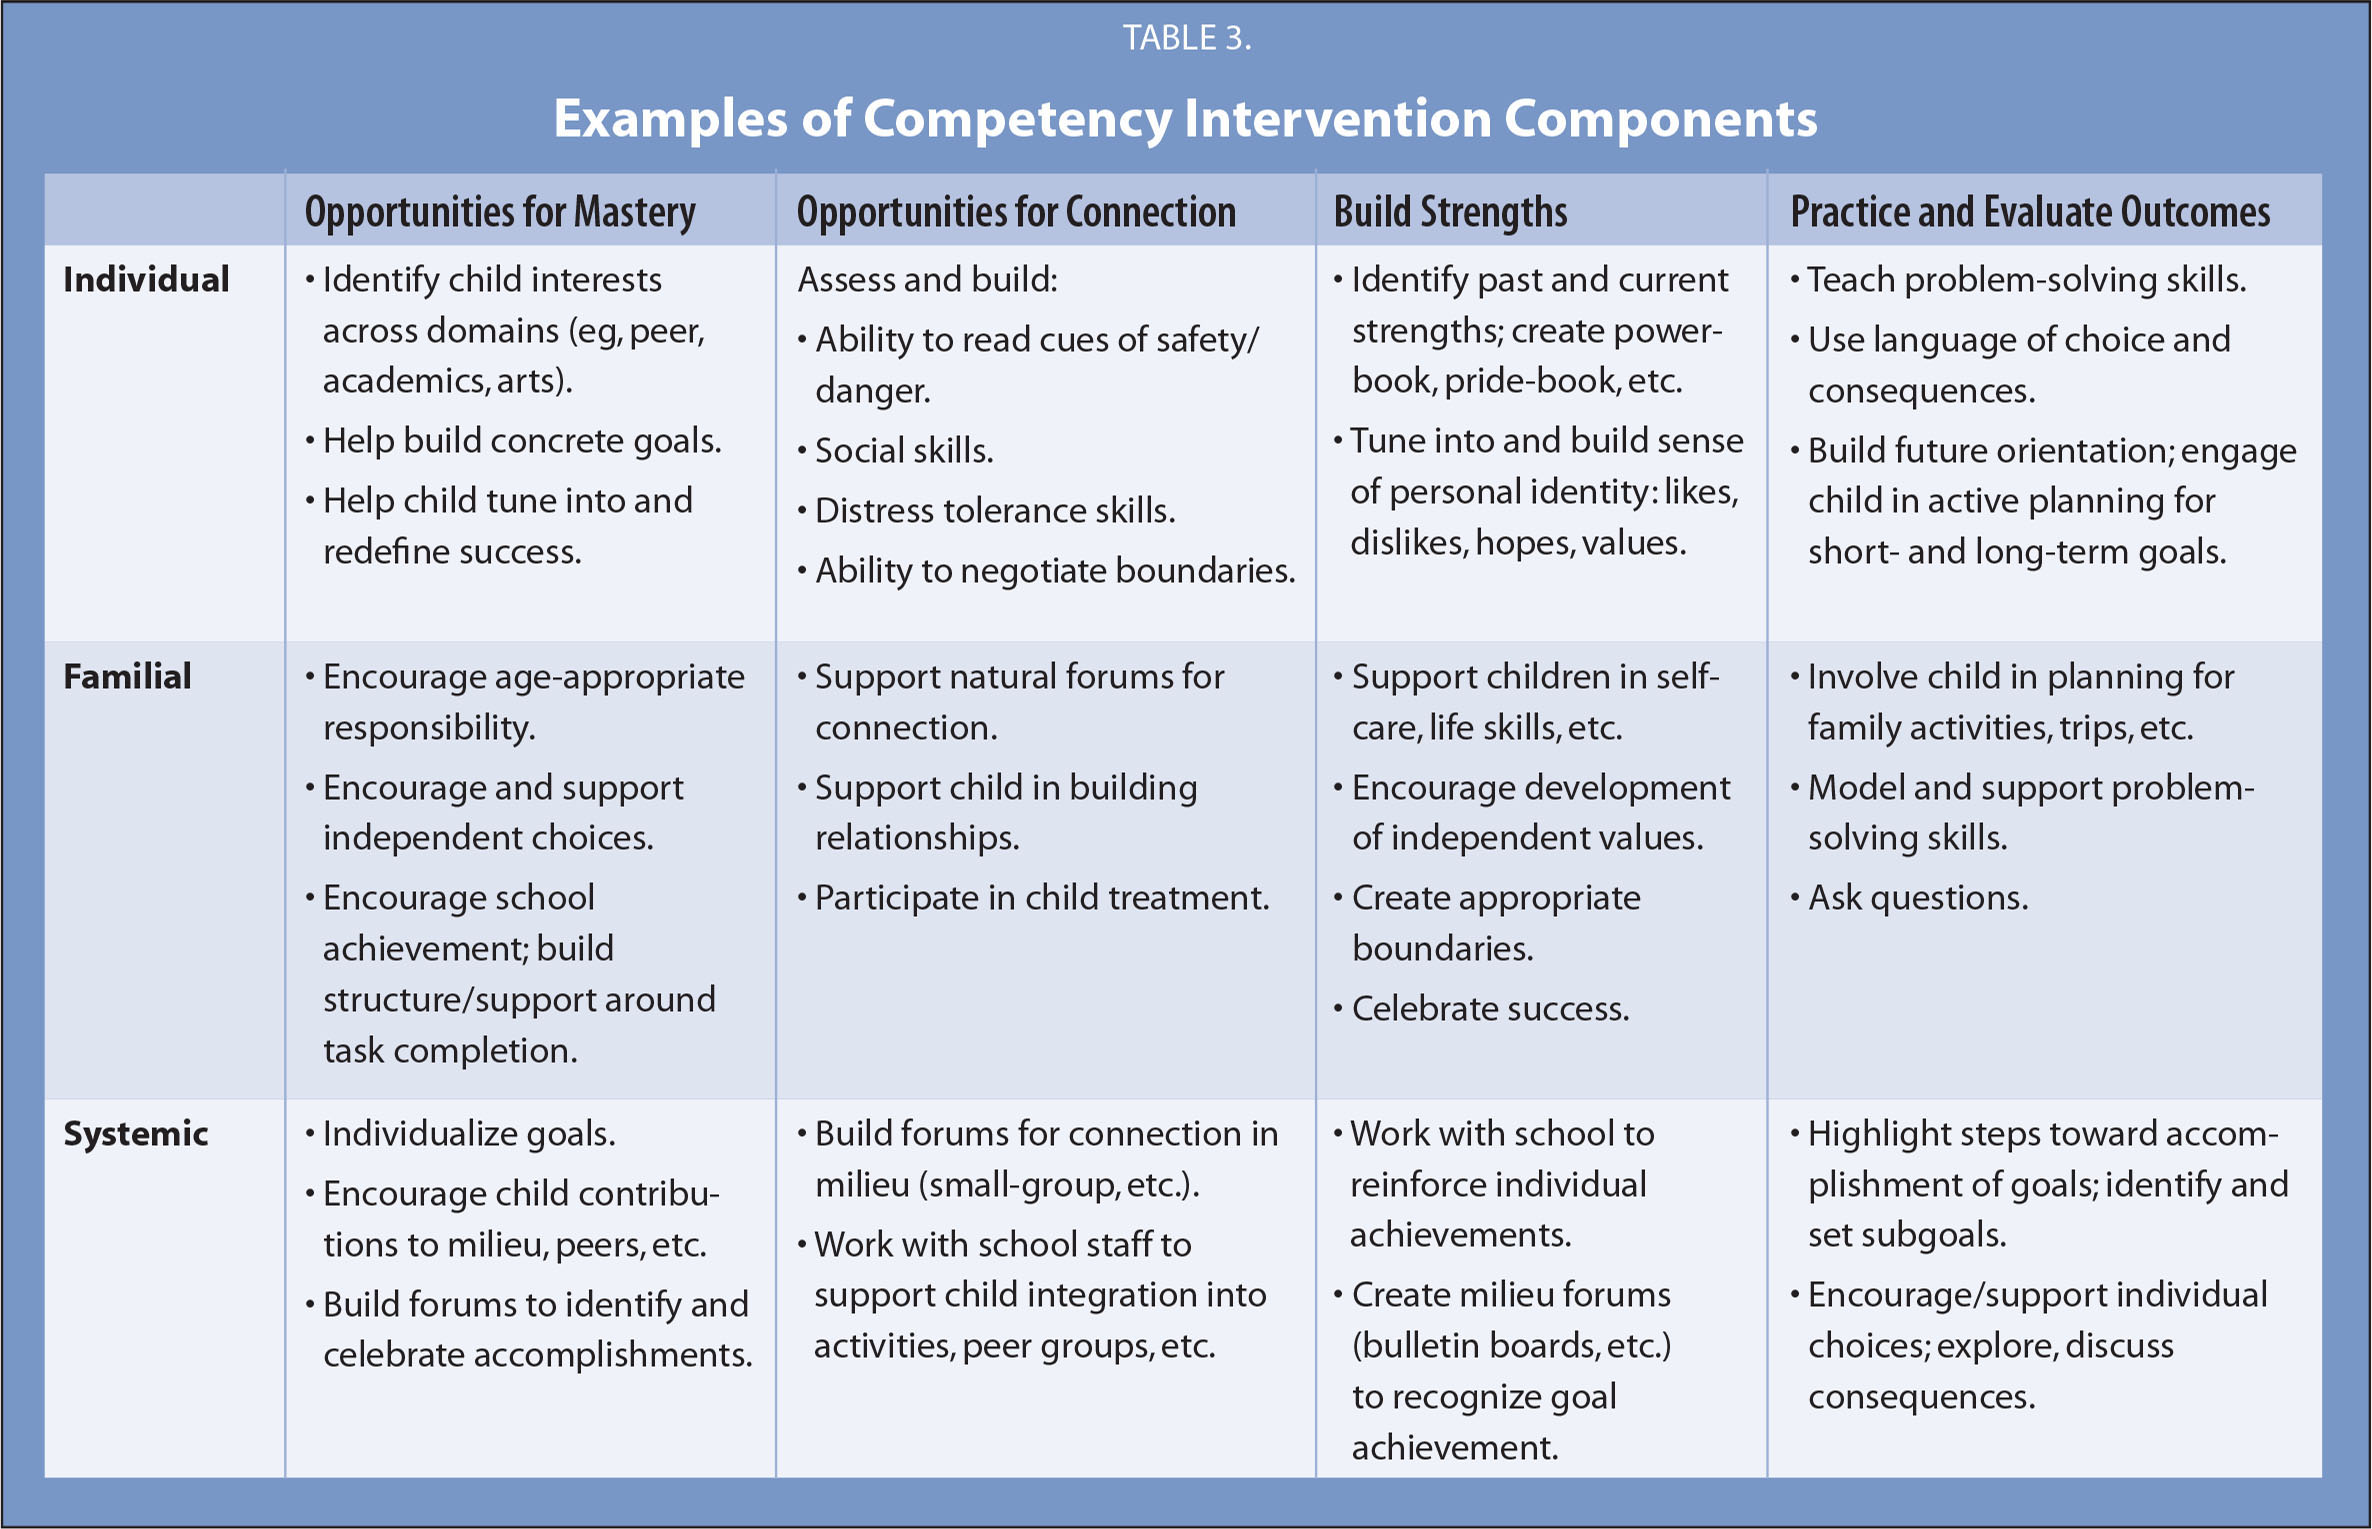 Examples of Competency Intervention Components